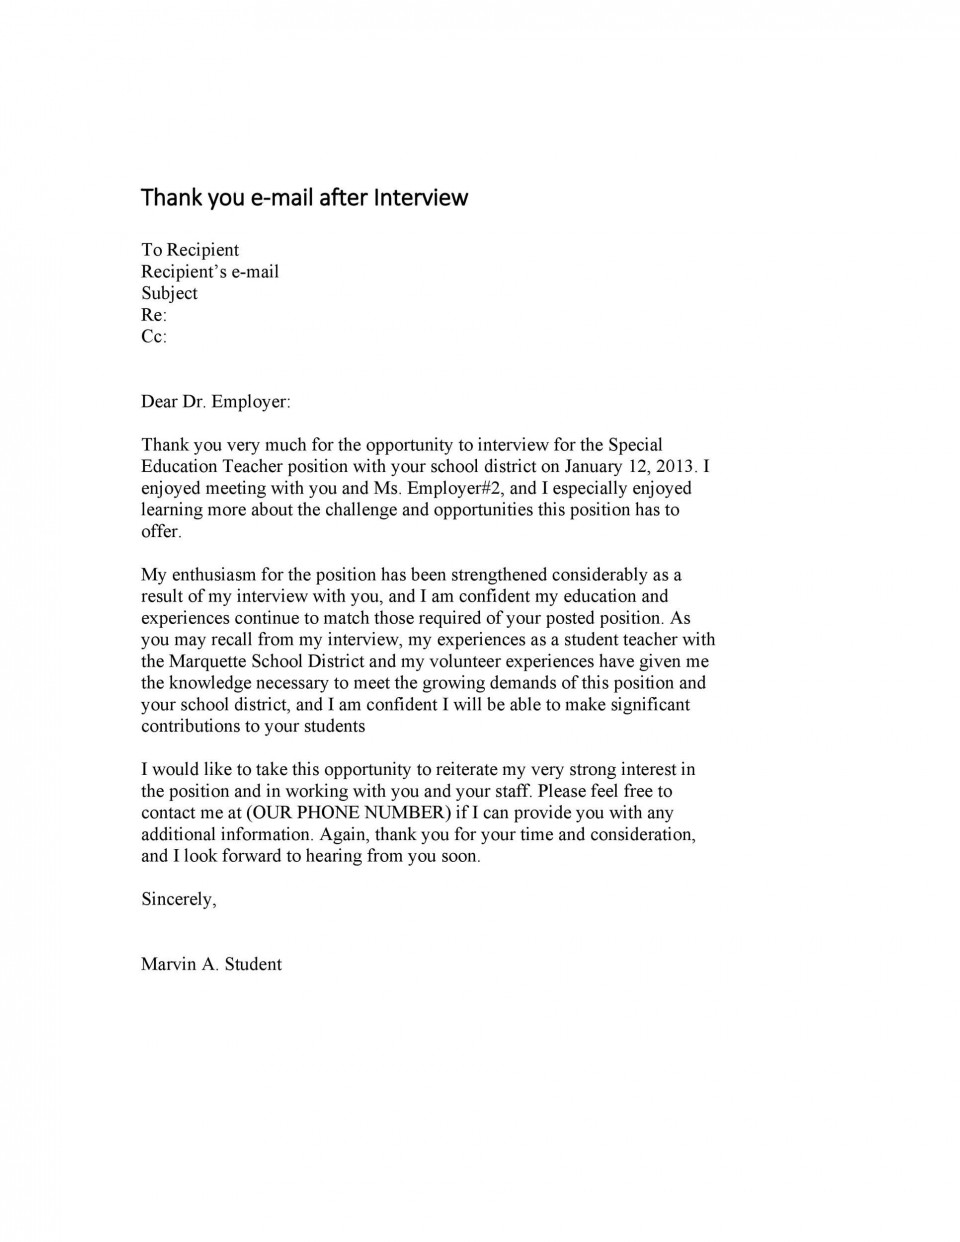 007 Excellent Thank You Note Template For Interview Design  Card Example After Letter Job960